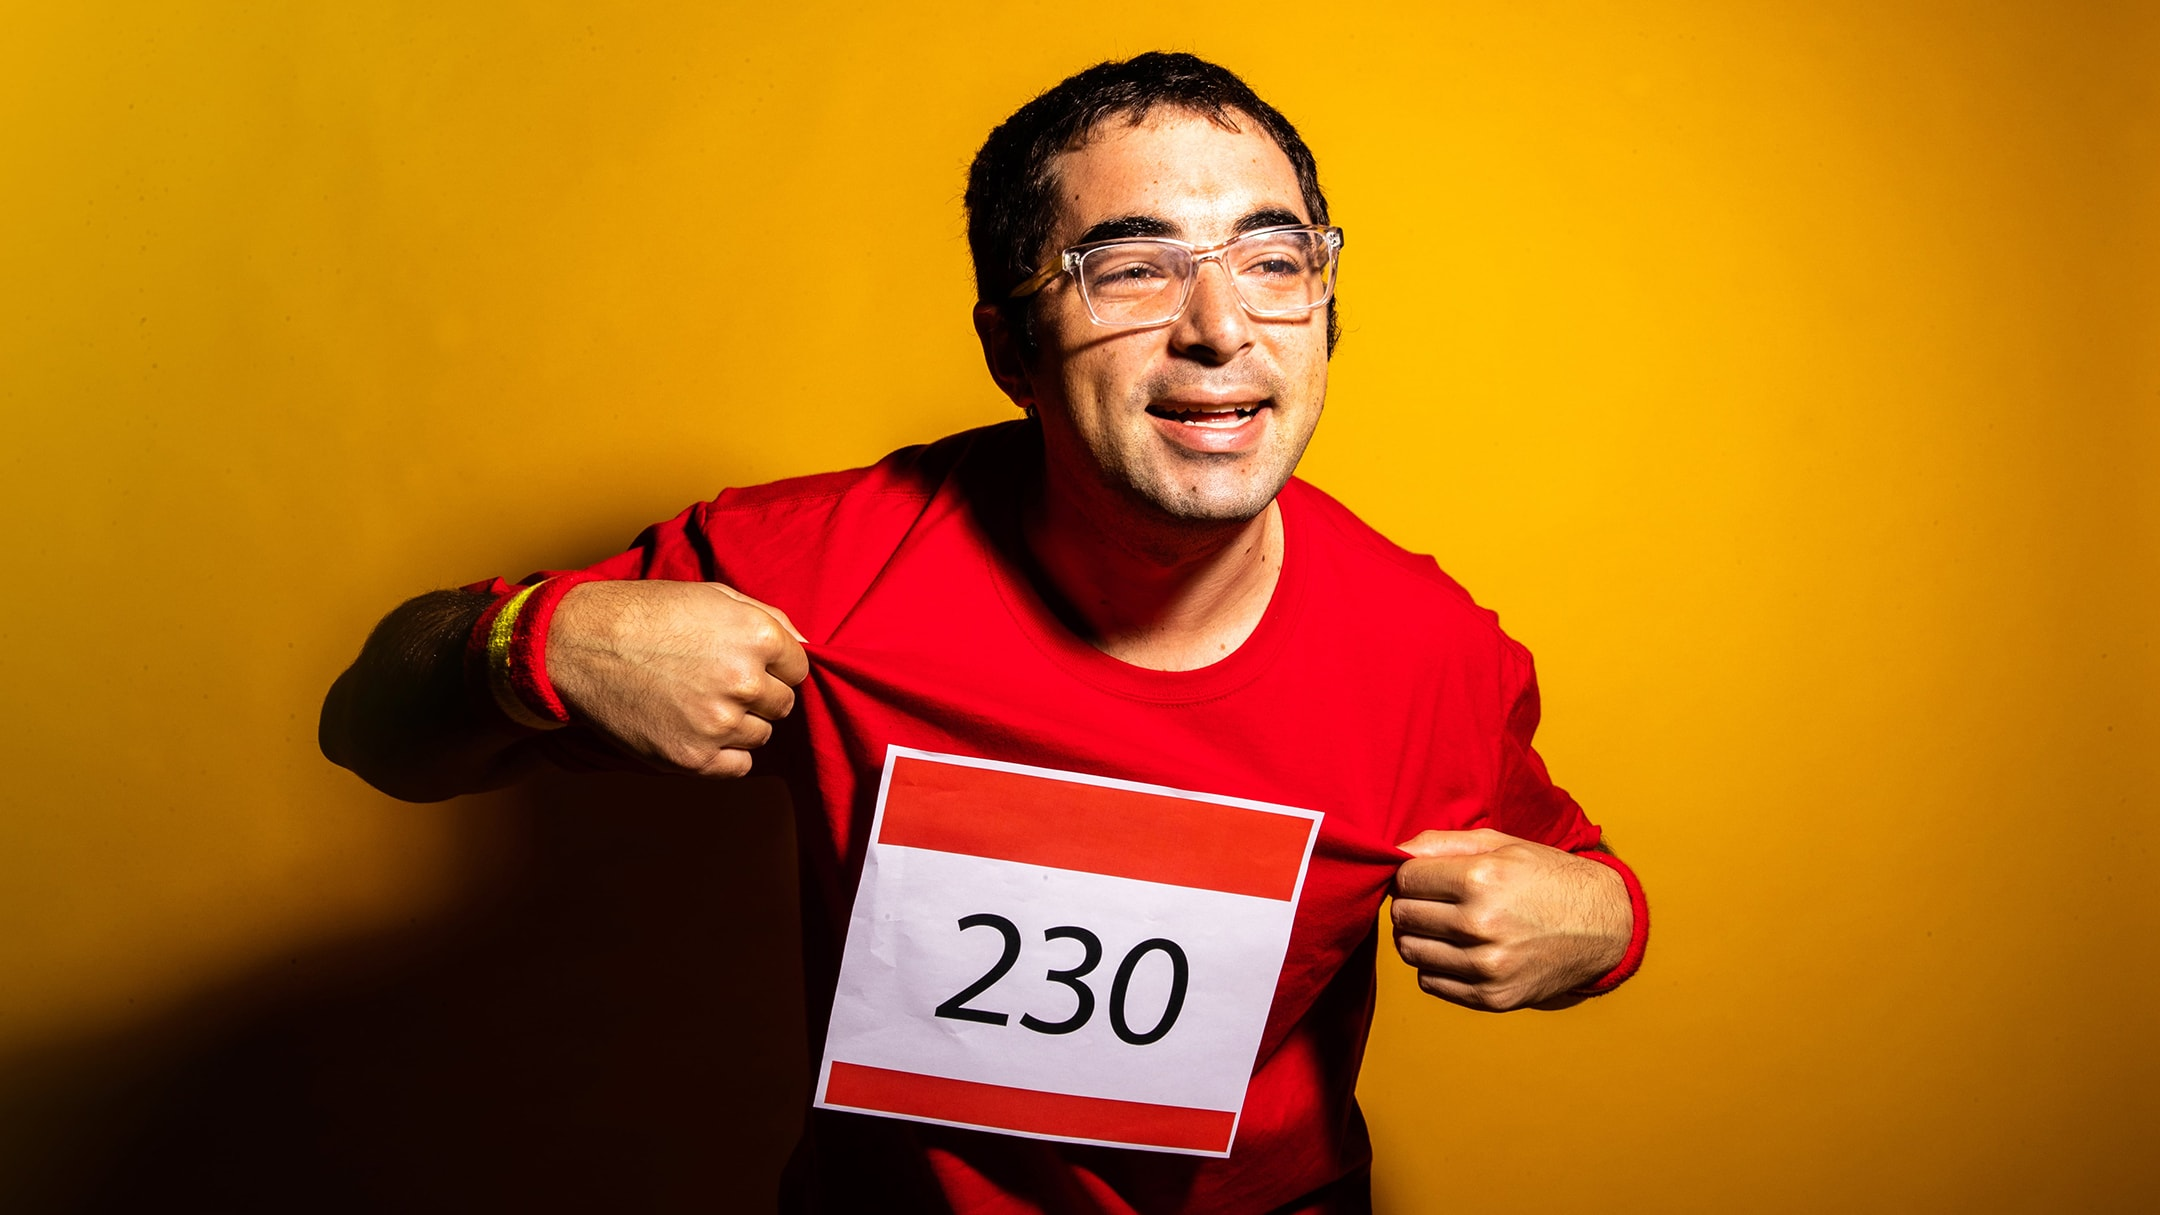 Man wearing red shirt with a marthon number on. He's smiling. This is the header image of a stick article about media.